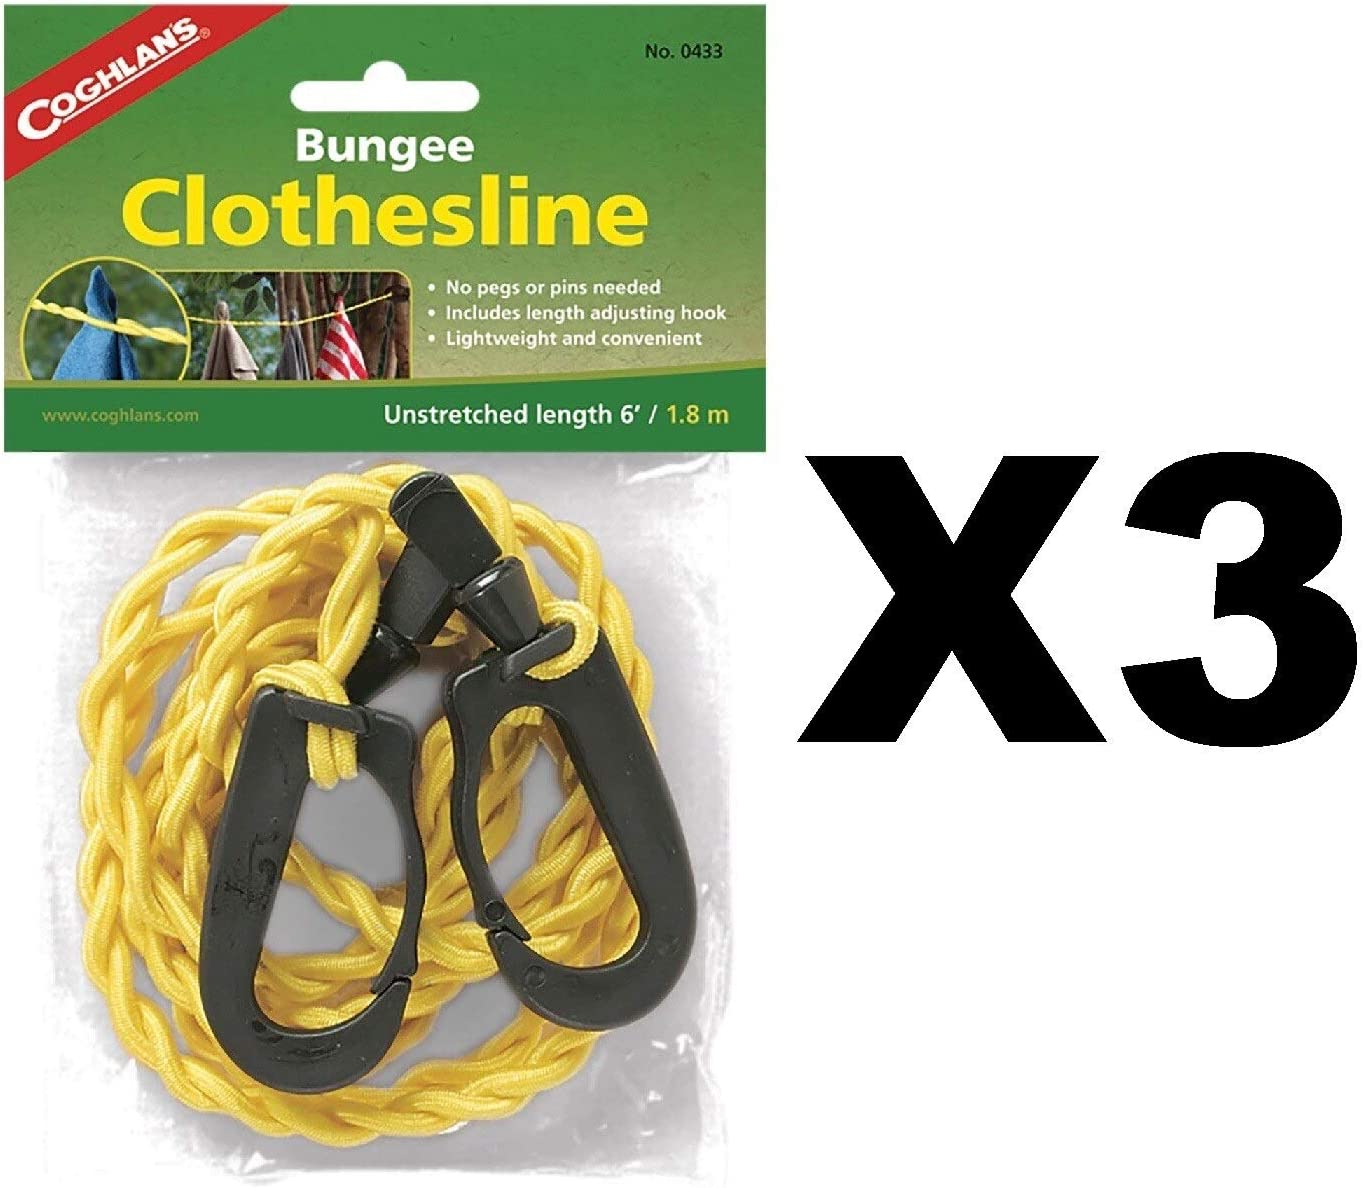 Coghlan's Bungee Clothesline Pegless w/Carabiner Clips Laundry Drying (3-Pack)